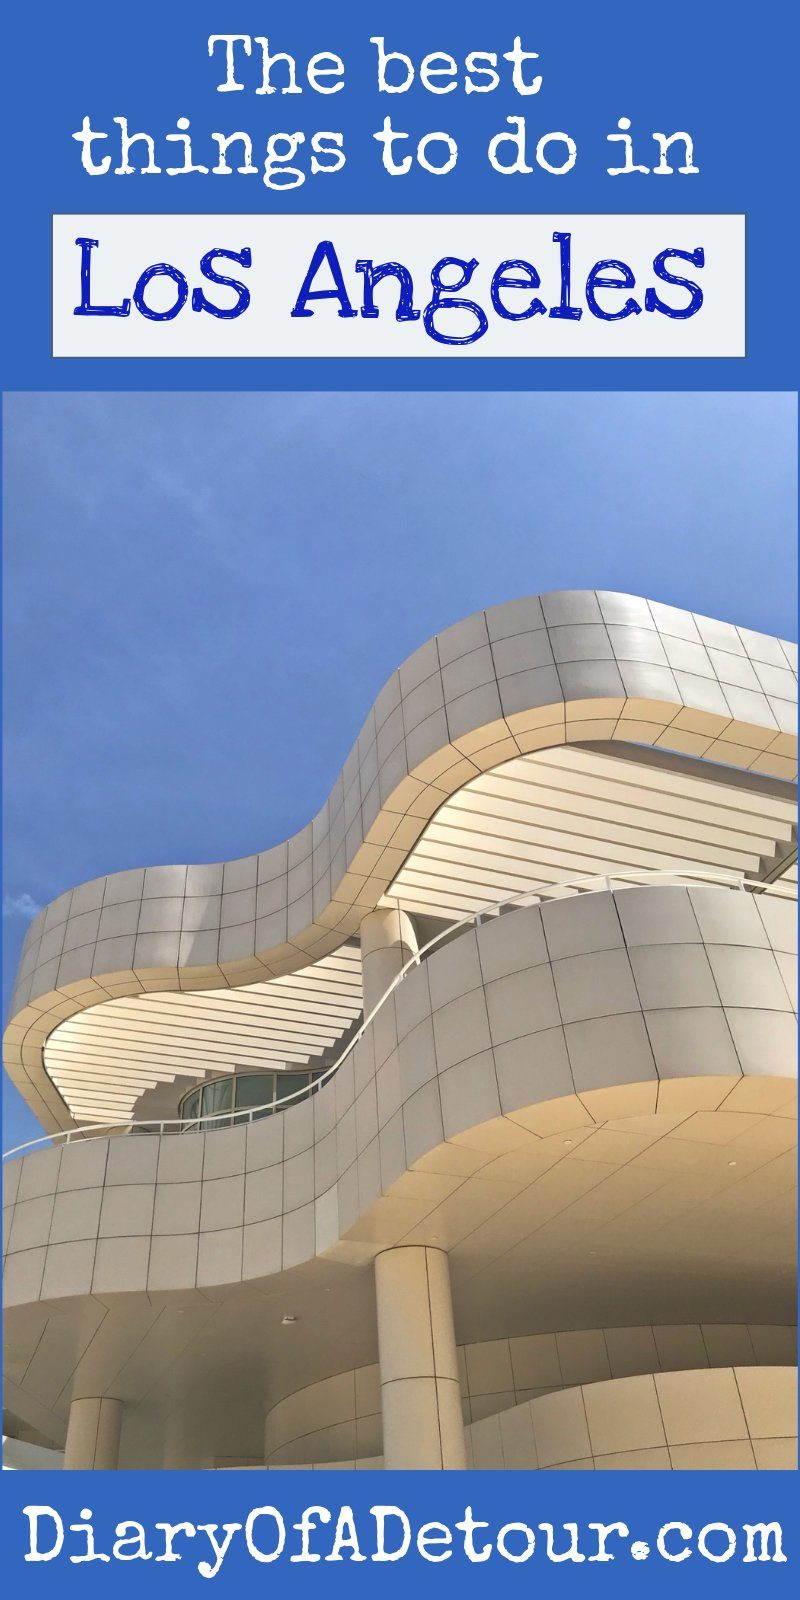 The best things to do in LA main image including curvy Getty Center building